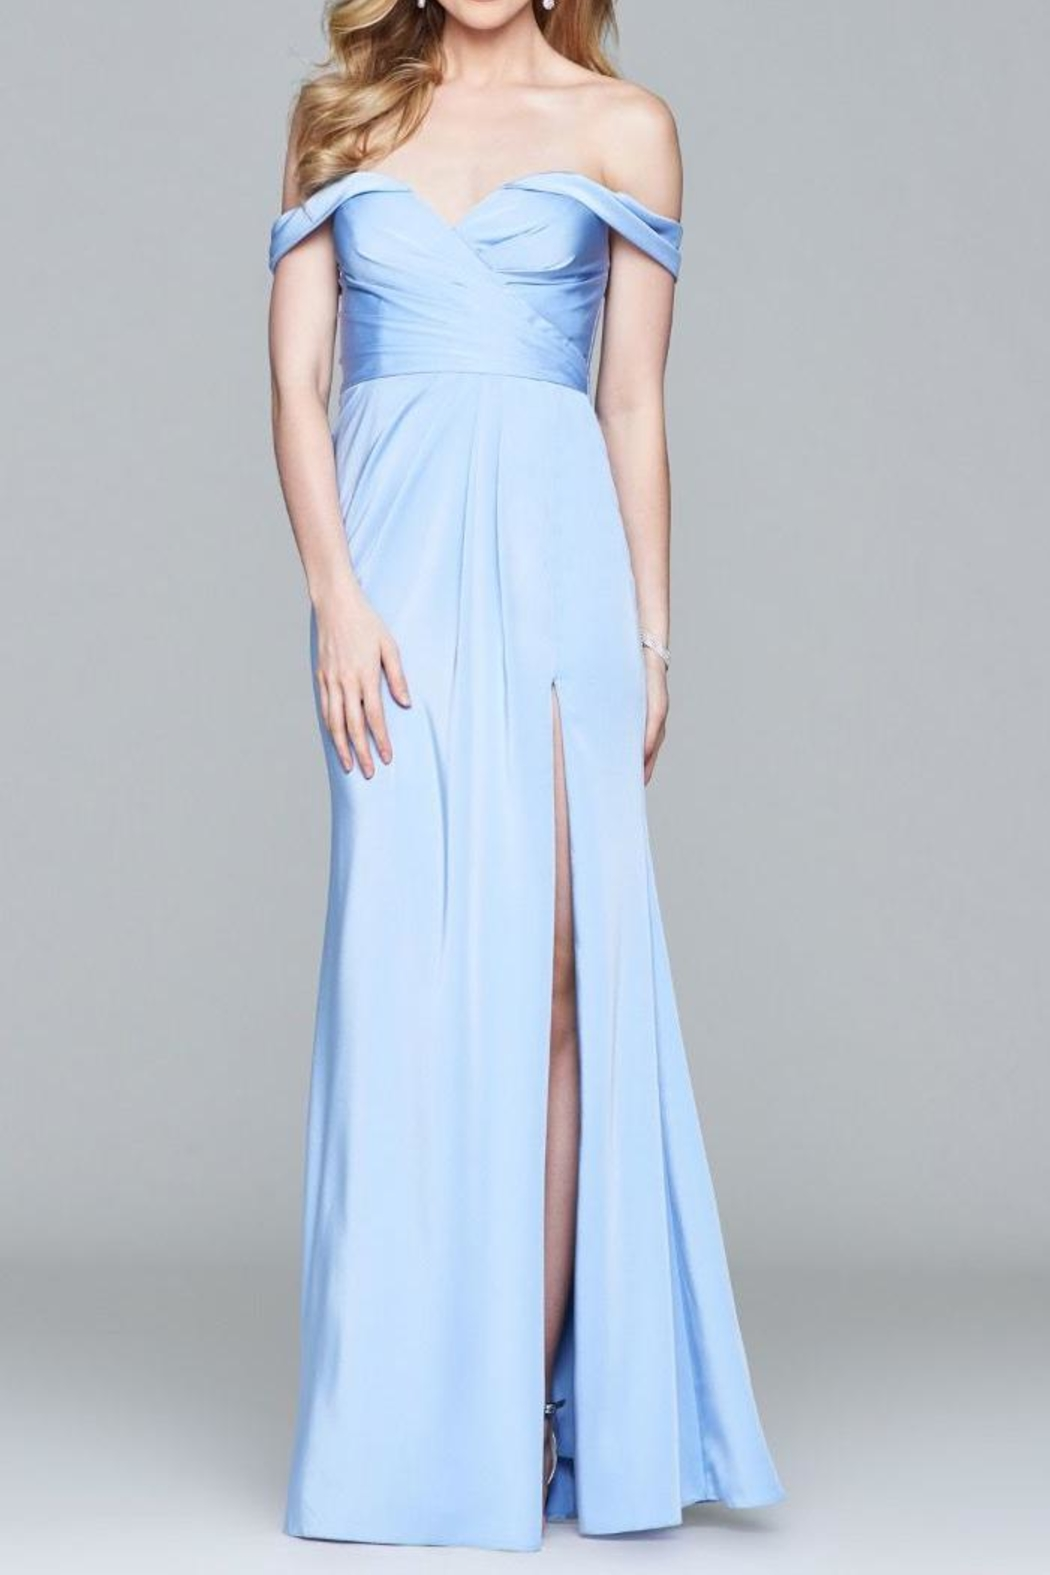 Faviana Beautiful Off-Shoulder Gown - Main Image